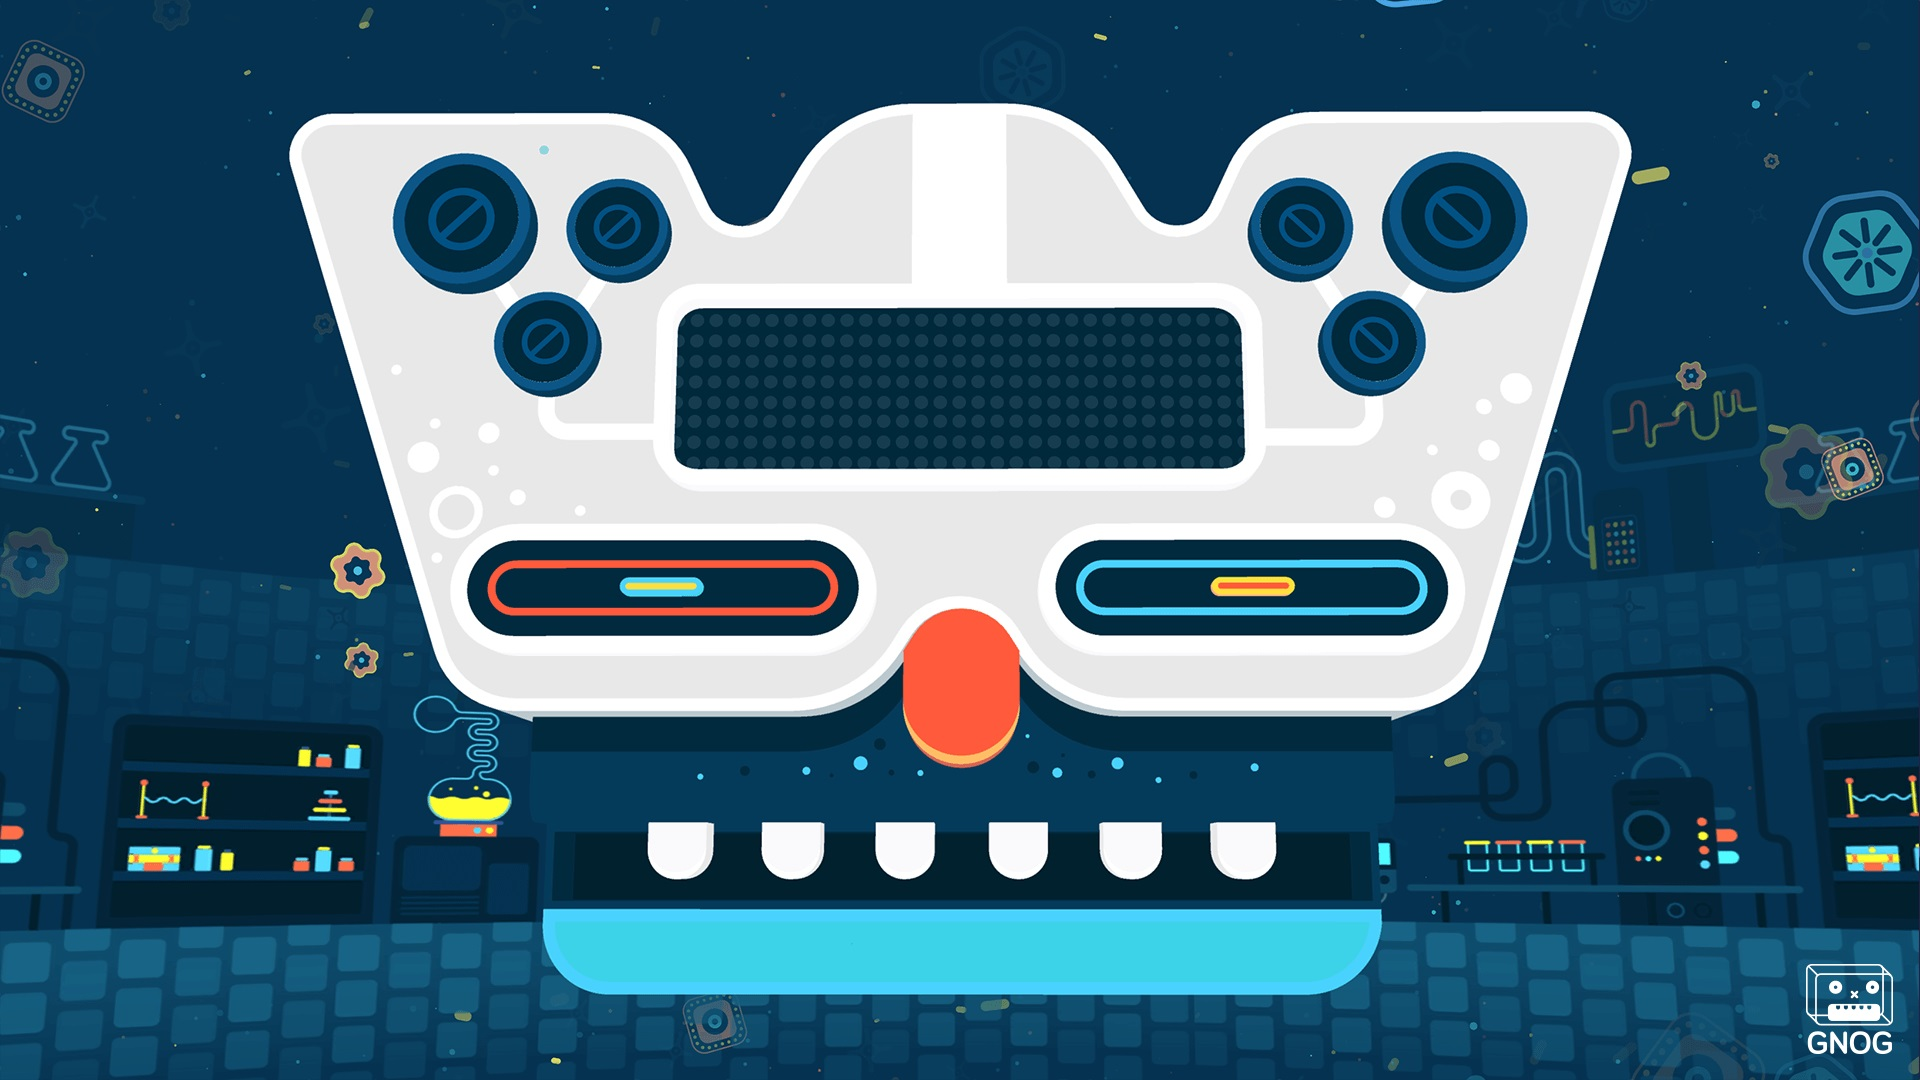 Gnog is free on the Epic Games Store, and free Alan Wake and